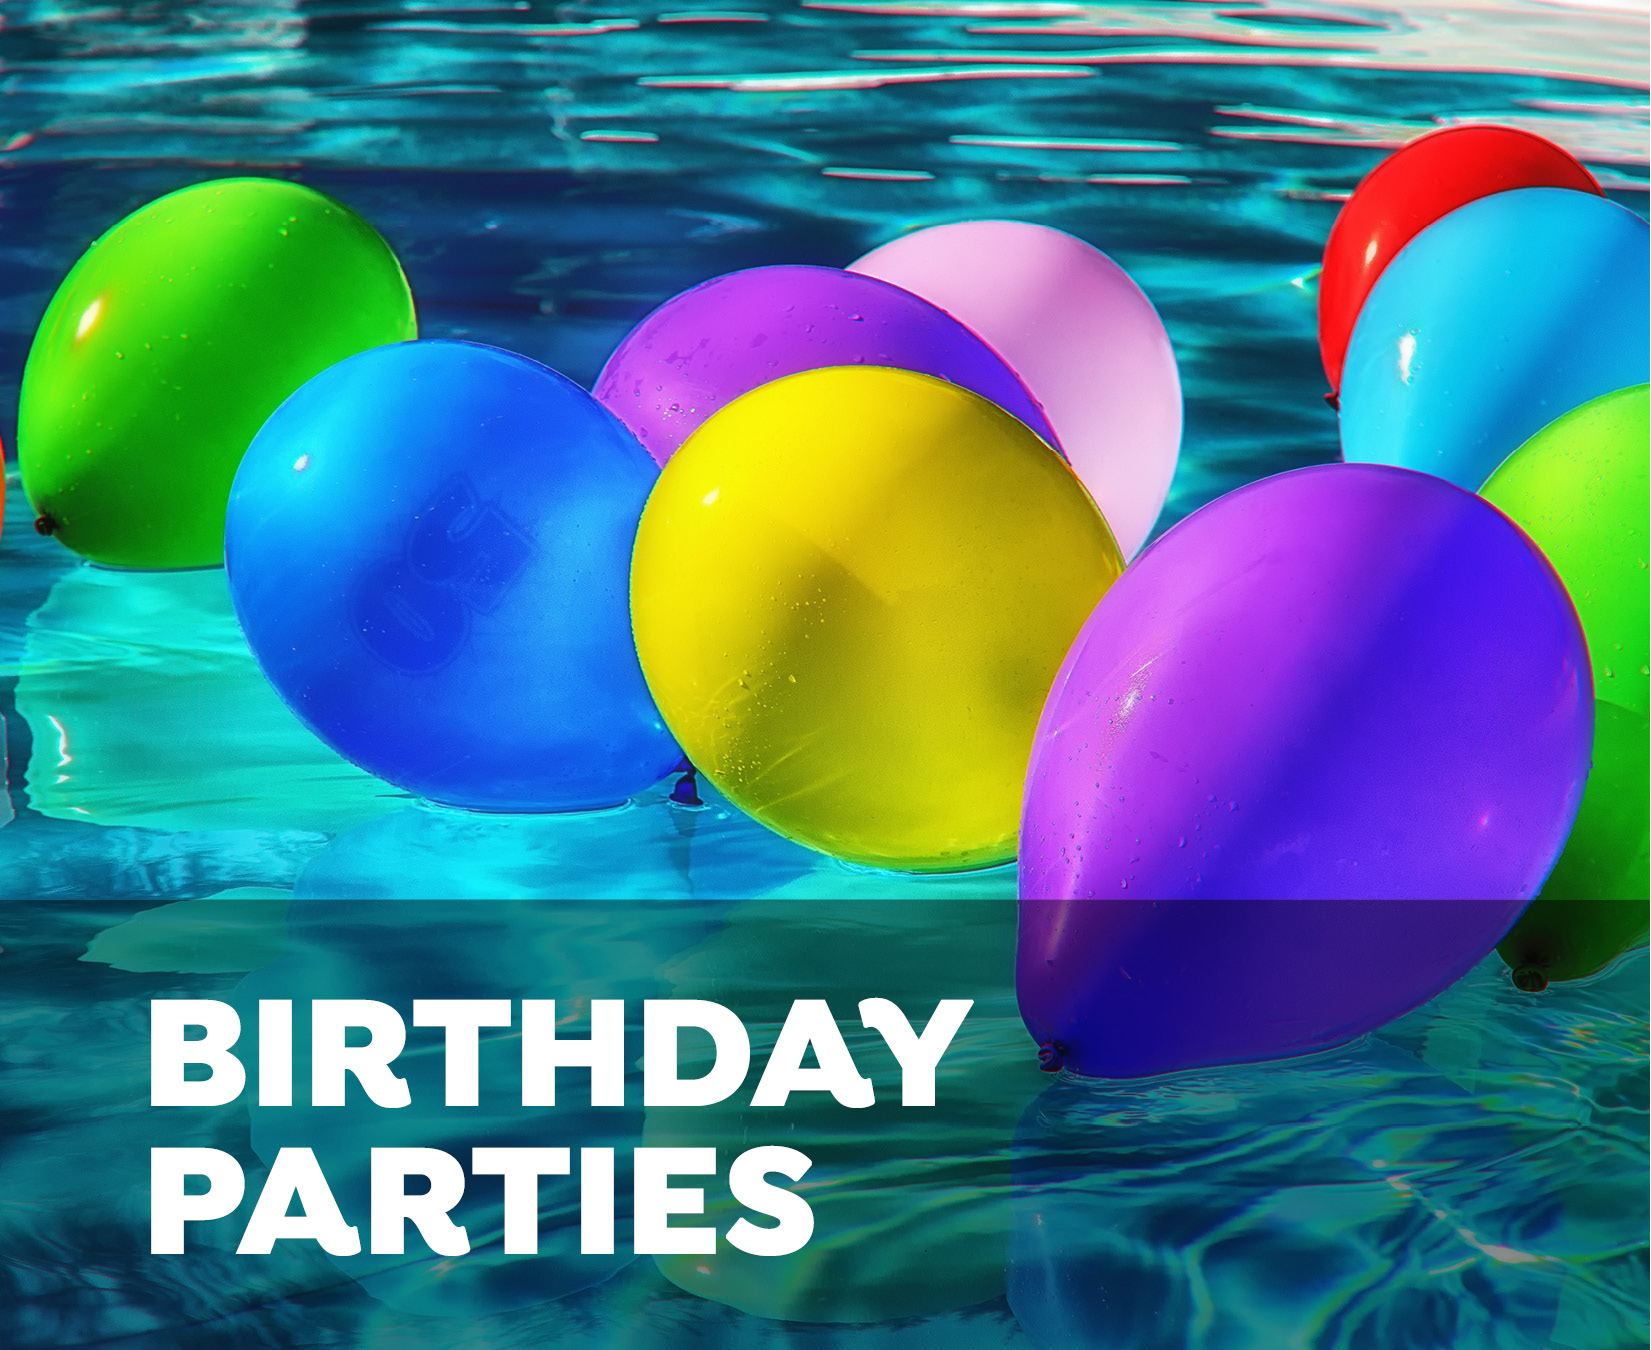 Birthday Parties - balloons floating in pool